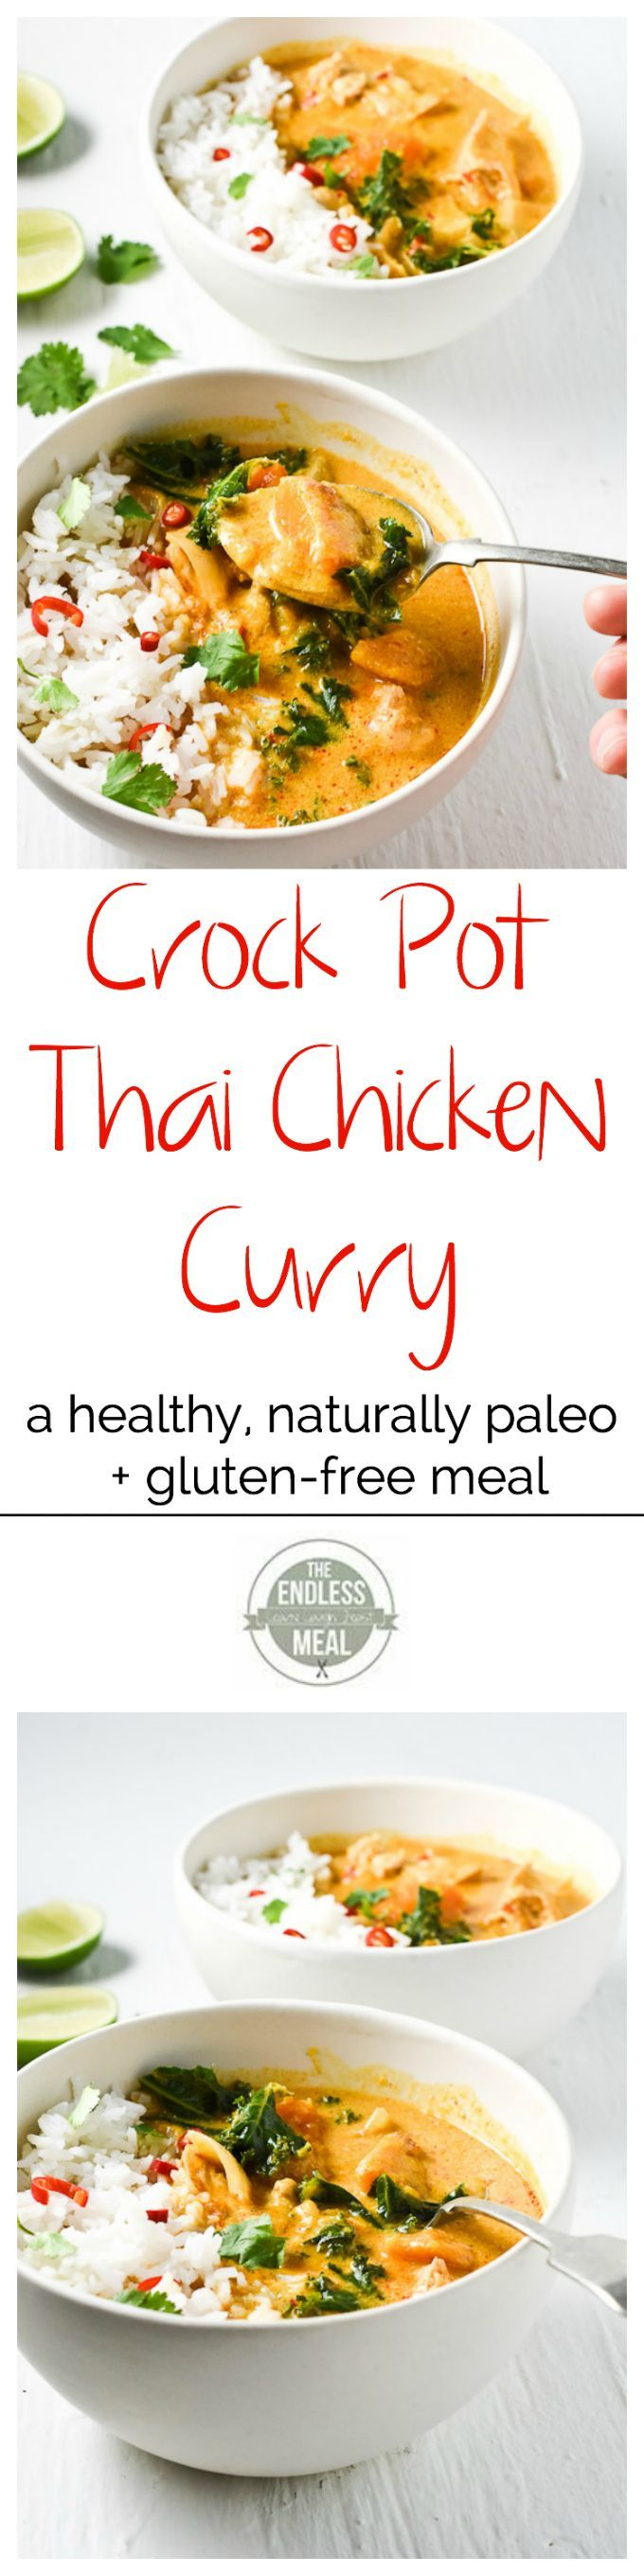 Crock Pot Thai Chicken Curry | The Endless Meal